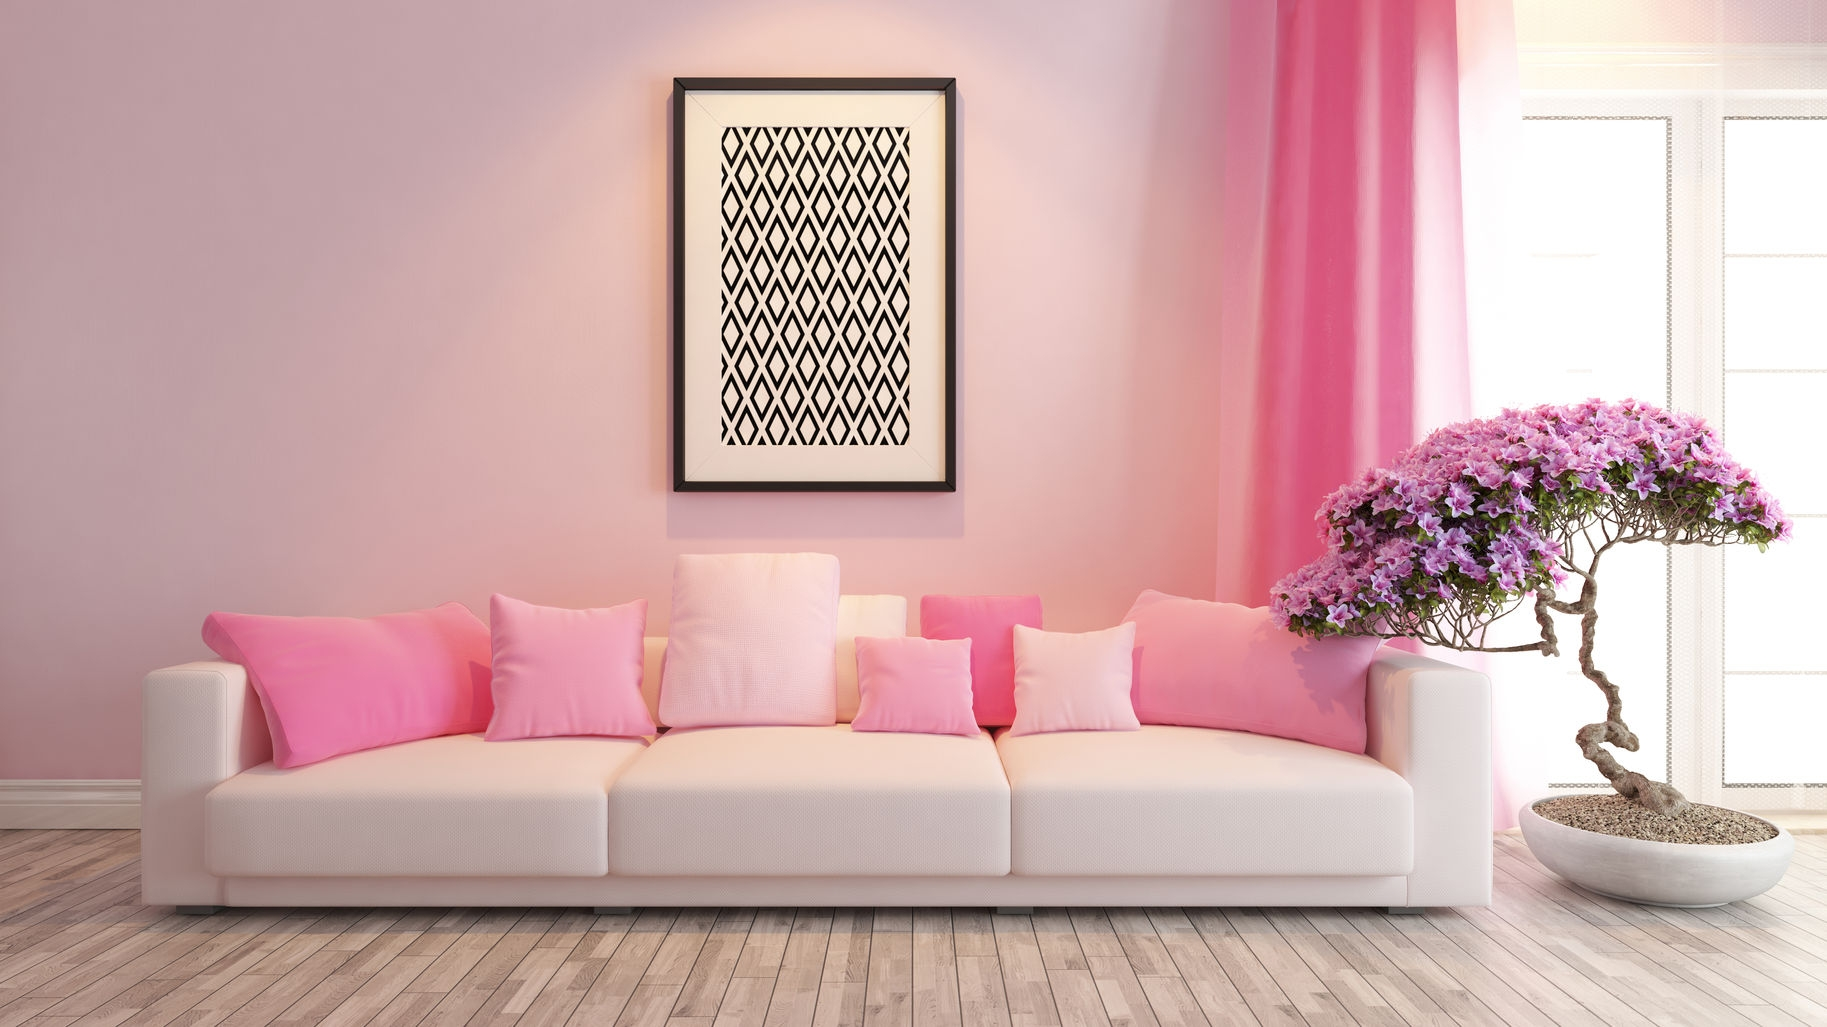 image-of-pink-styled-room